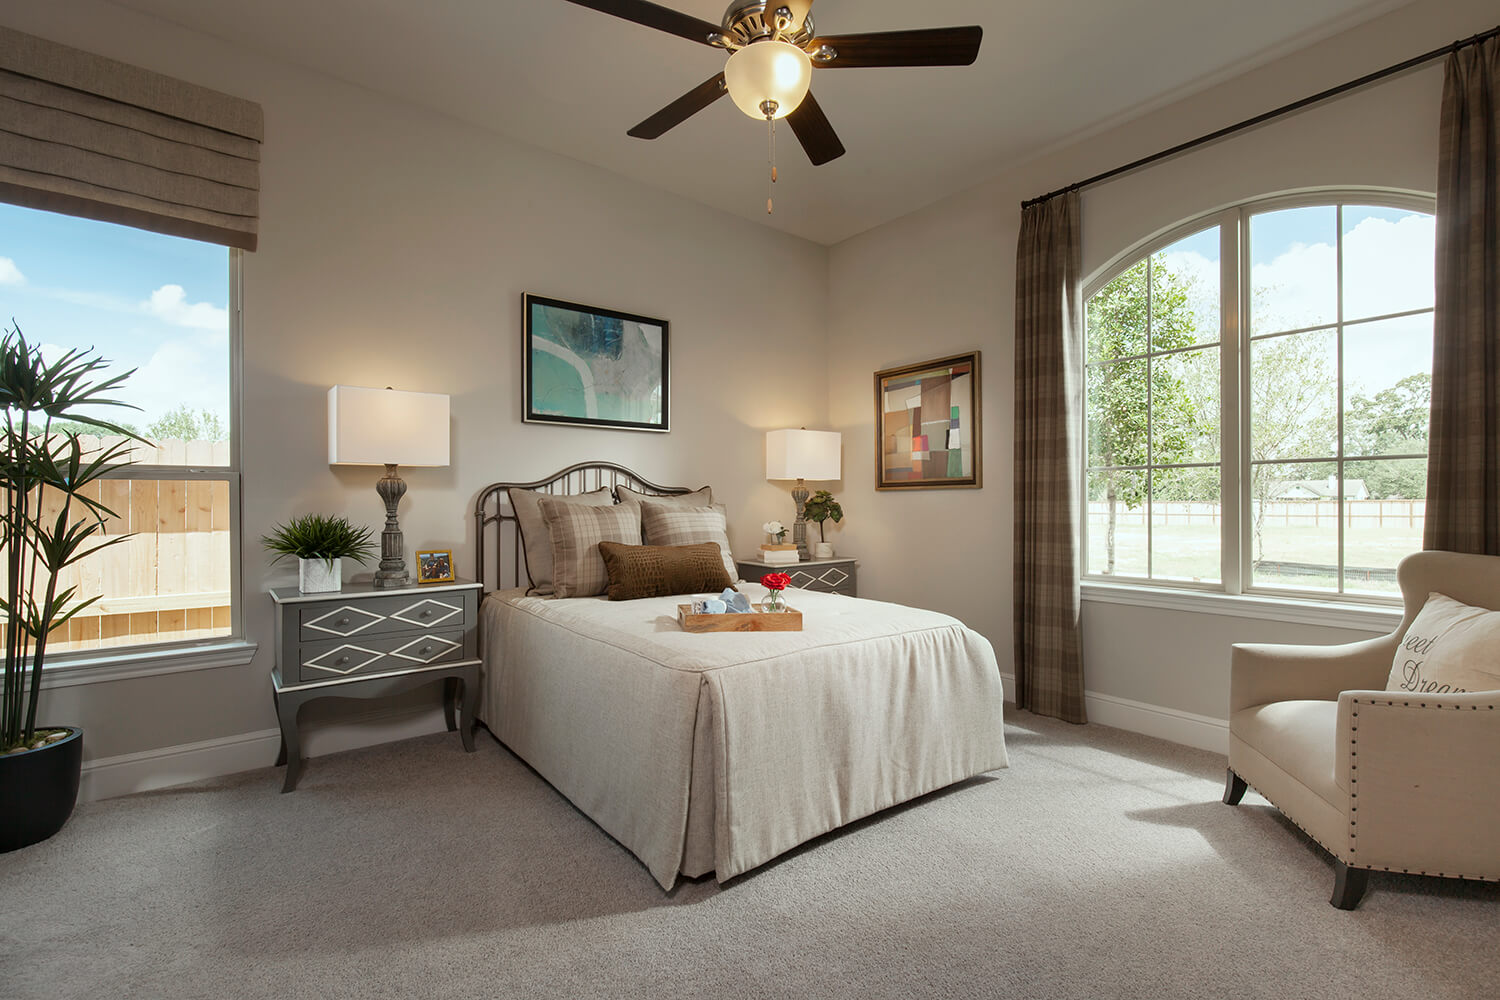 Secondary Bedroom - The Katy (8264 Plan)